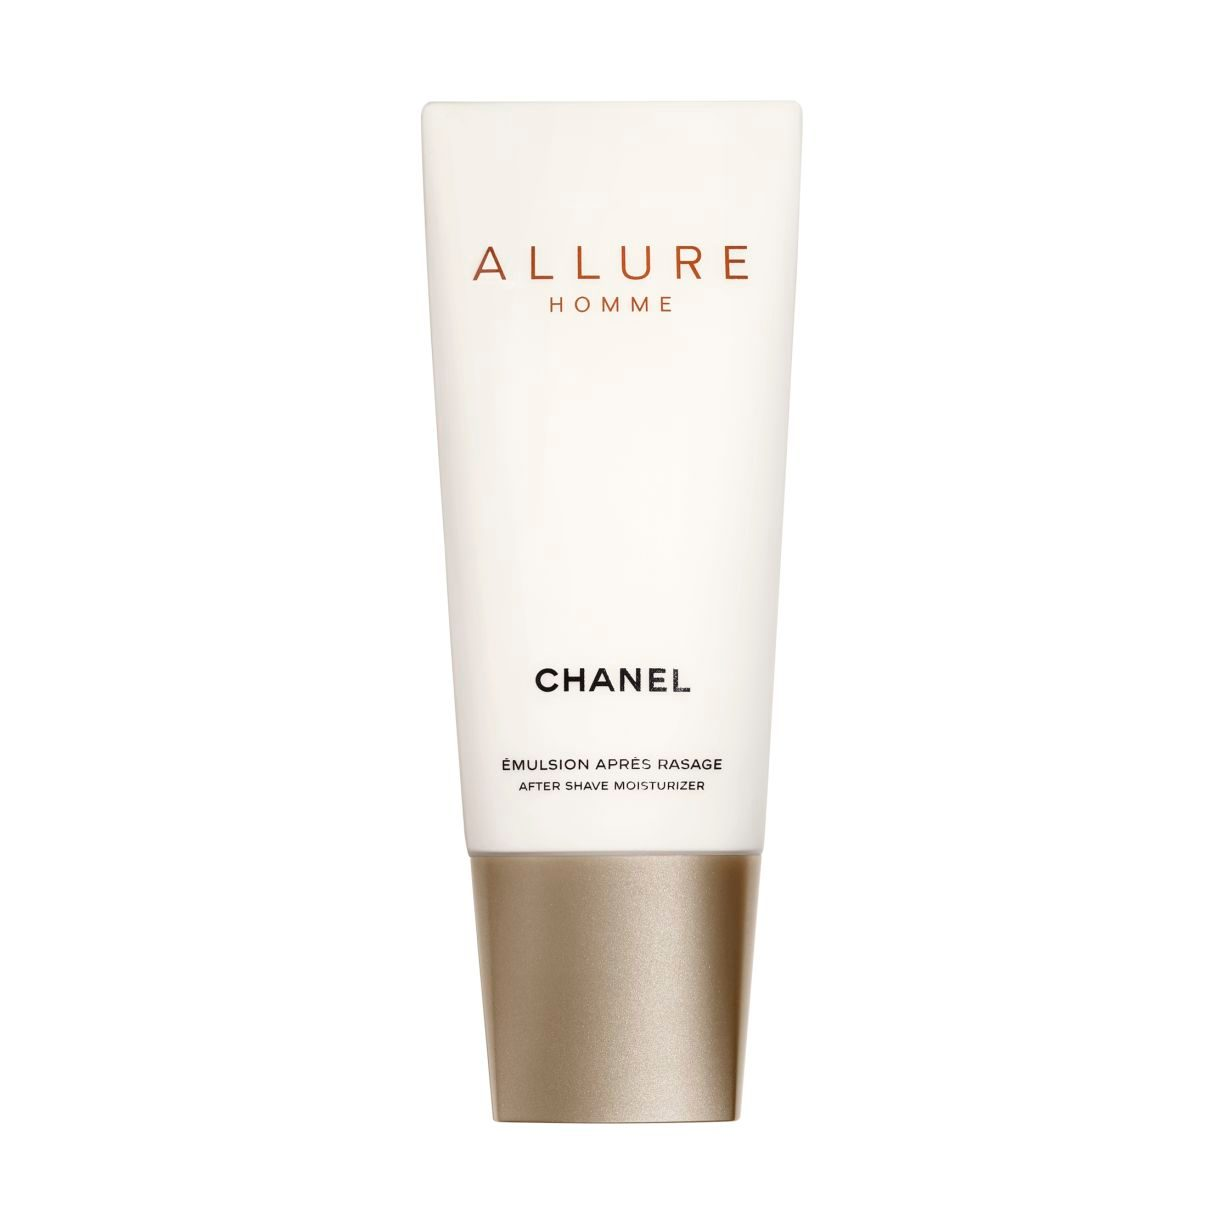 ALLURE HOMME AFTER SHAVE MOISTURISER